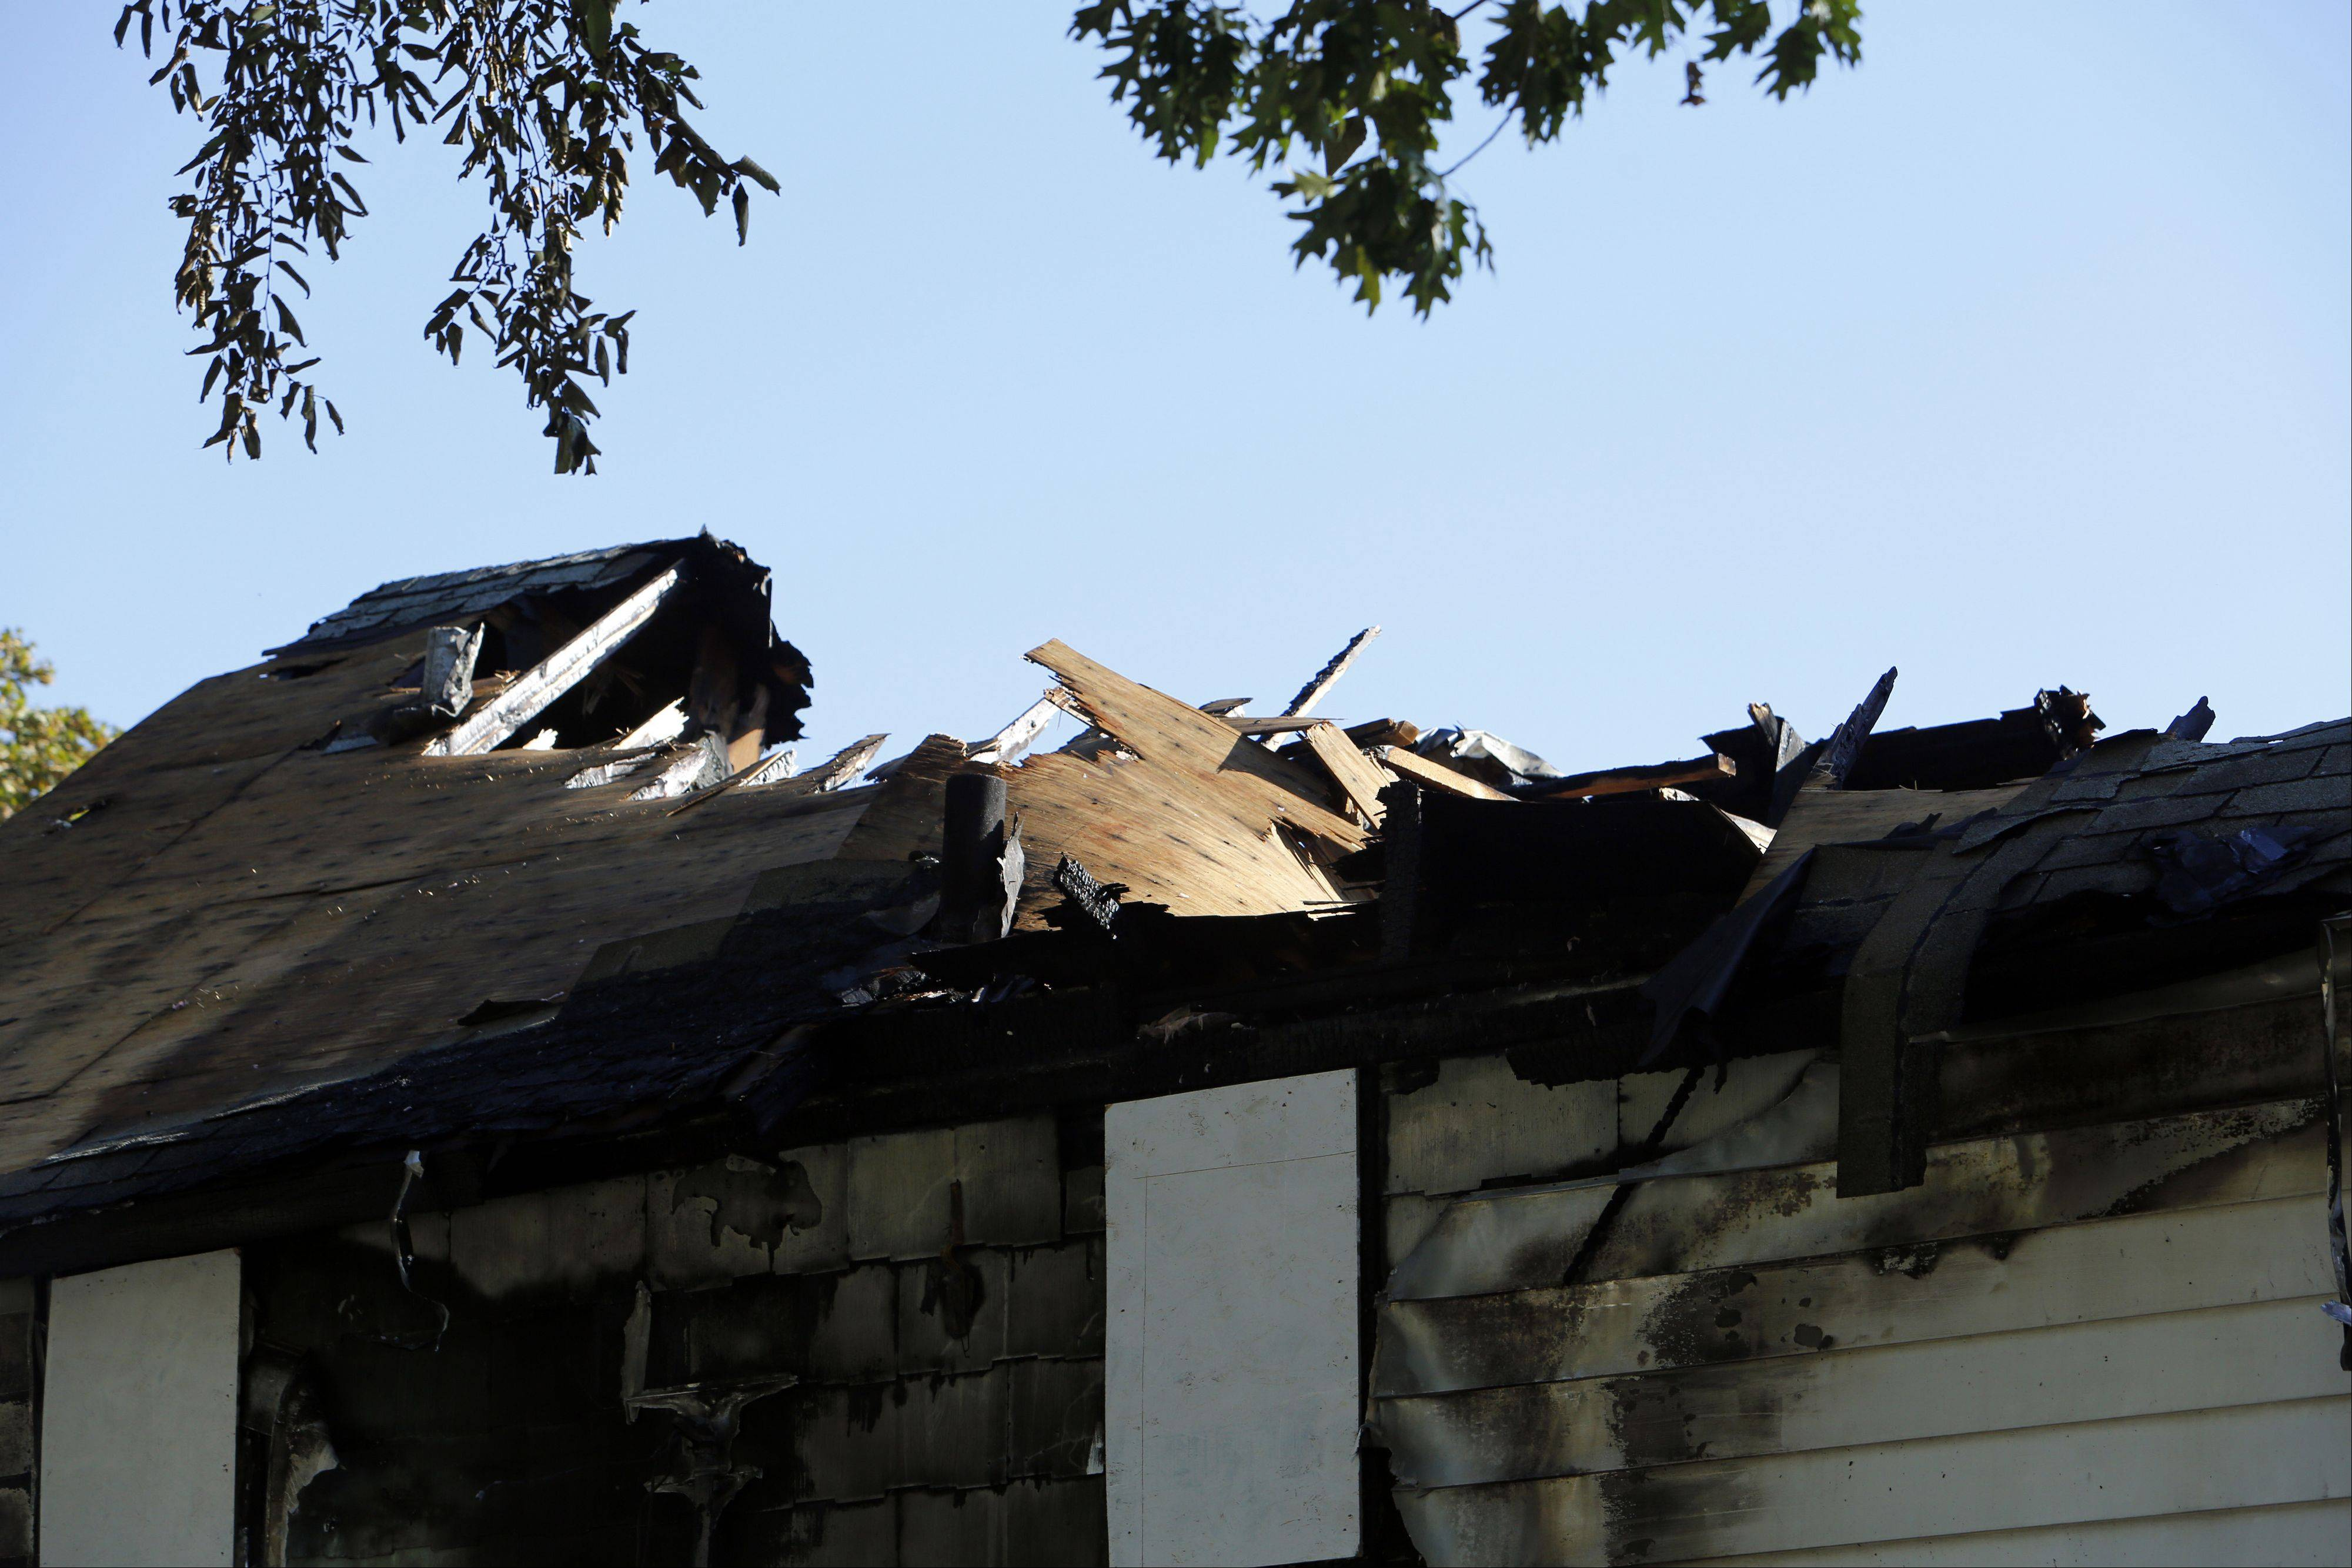 More than $170,000 damage resulted in Tuesday night's house fire on May Street in Elgin.